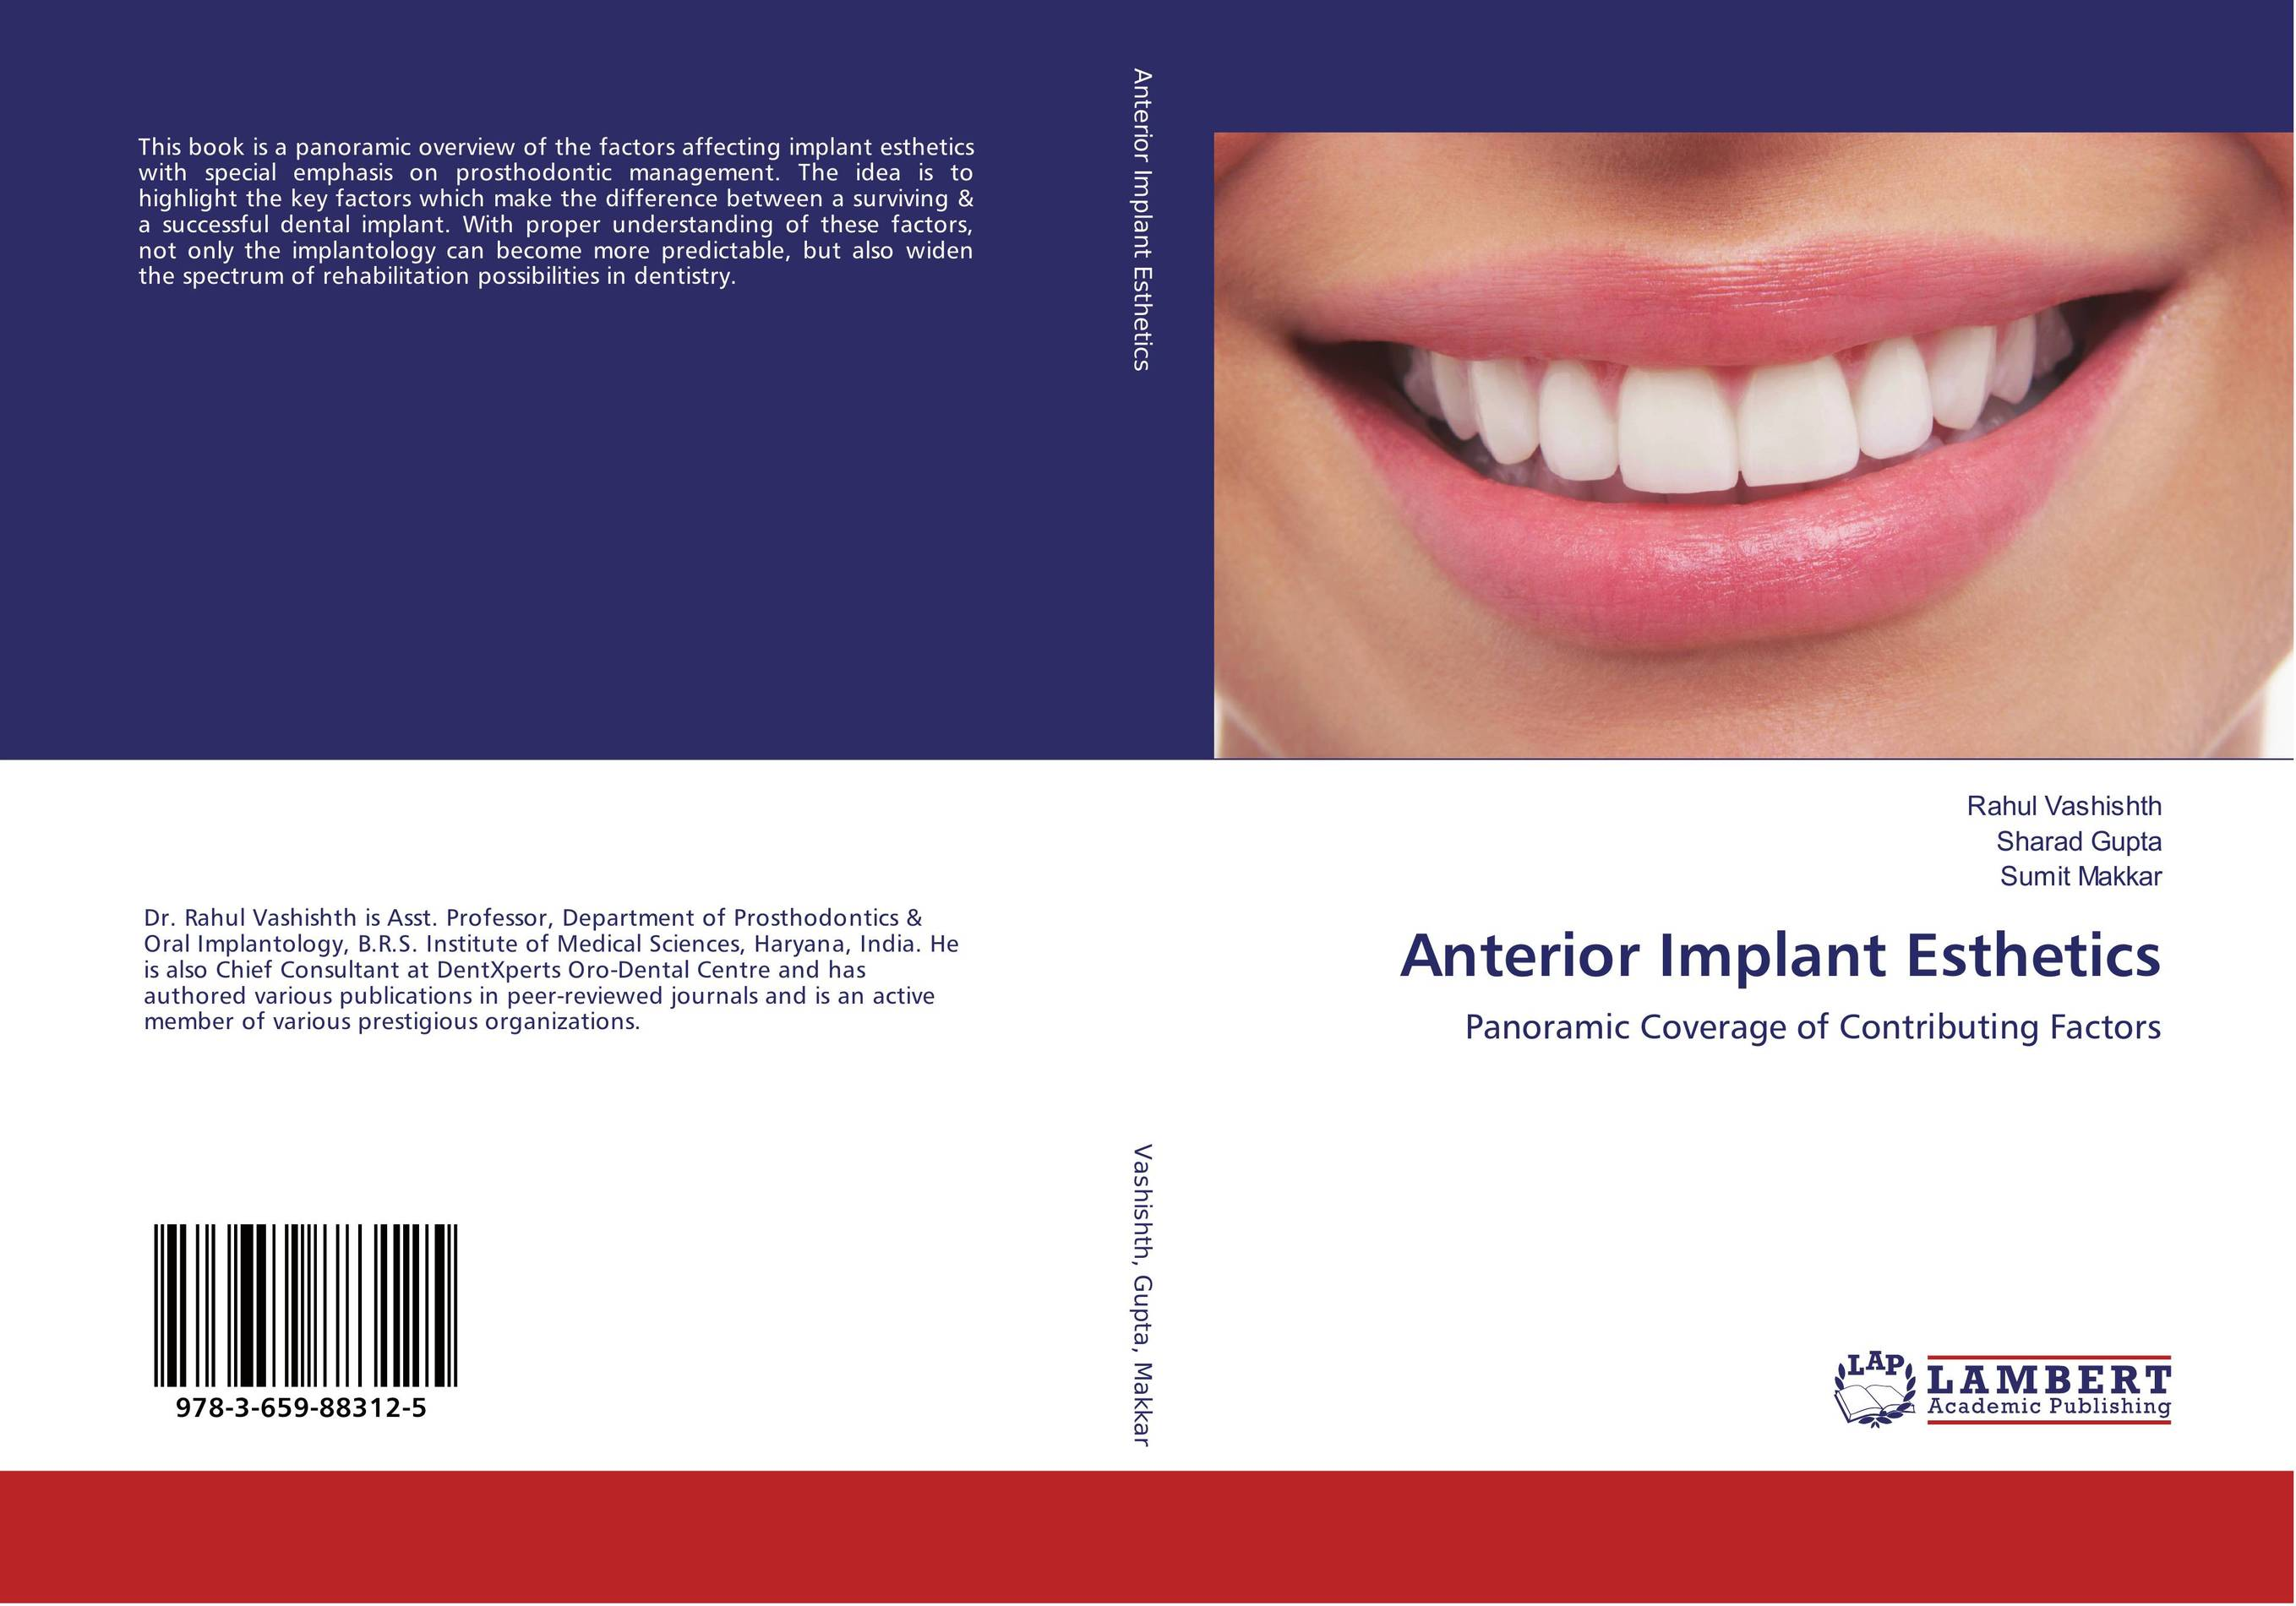 Anterior Implant Esthetics esthetics in implant dentistry